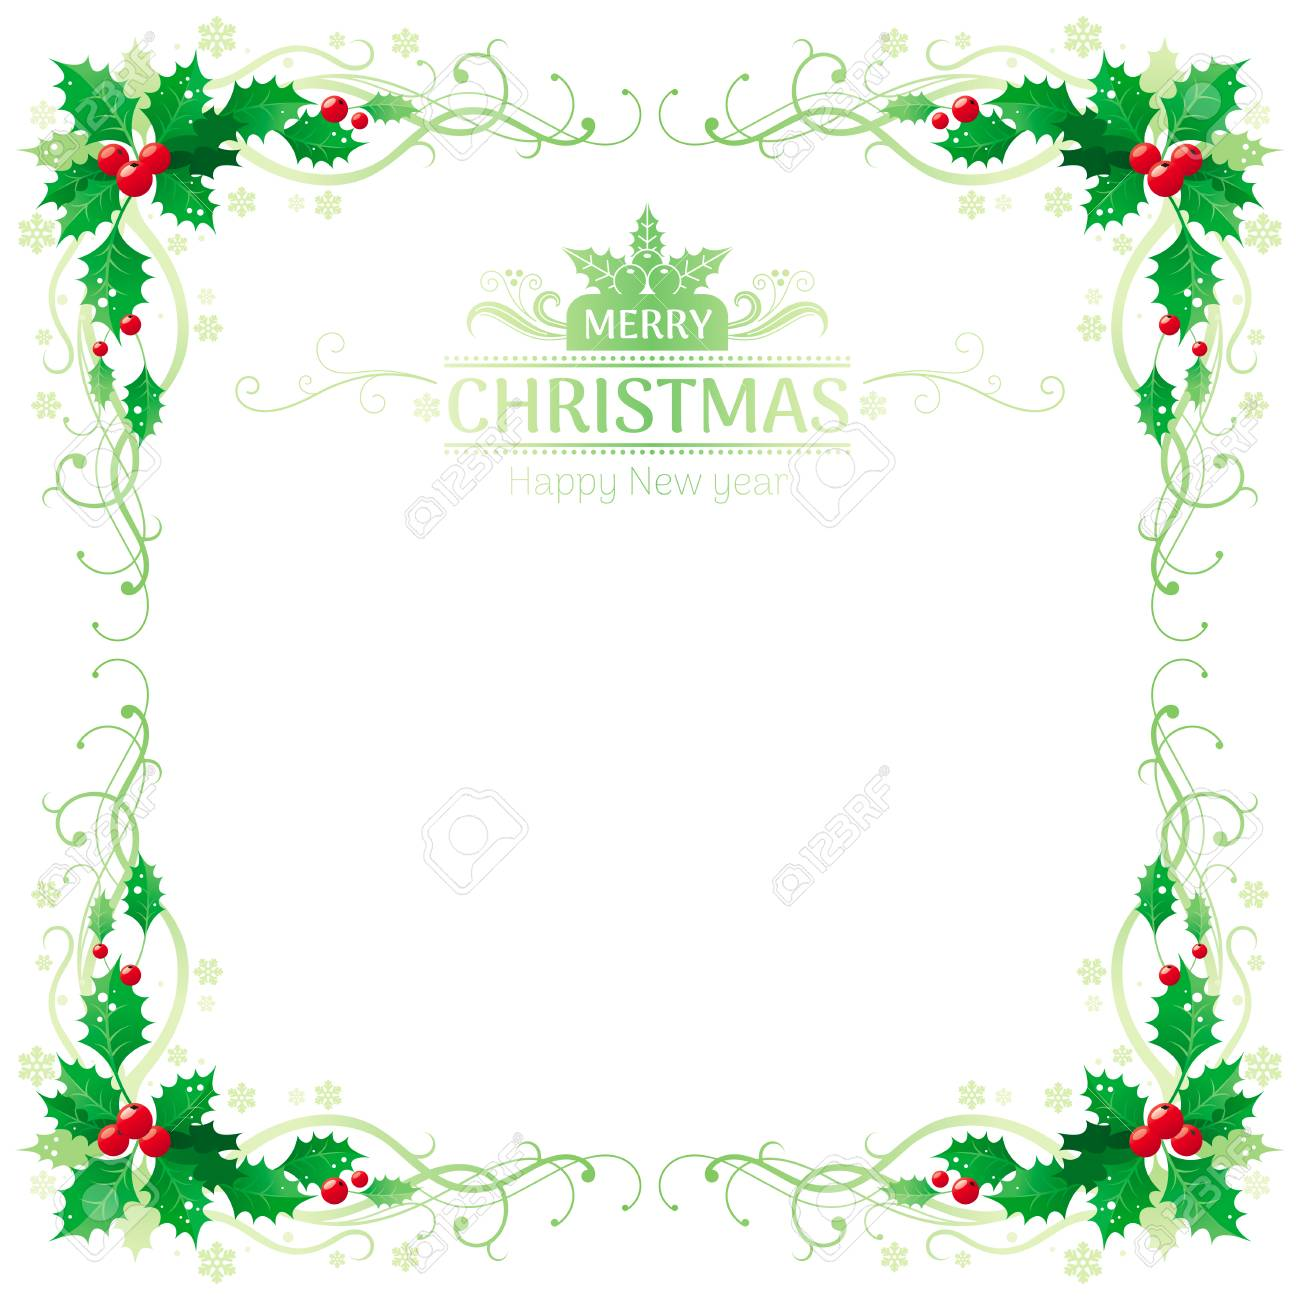 merry christmas and happy new year square border frame with holly berry leafs text lettering